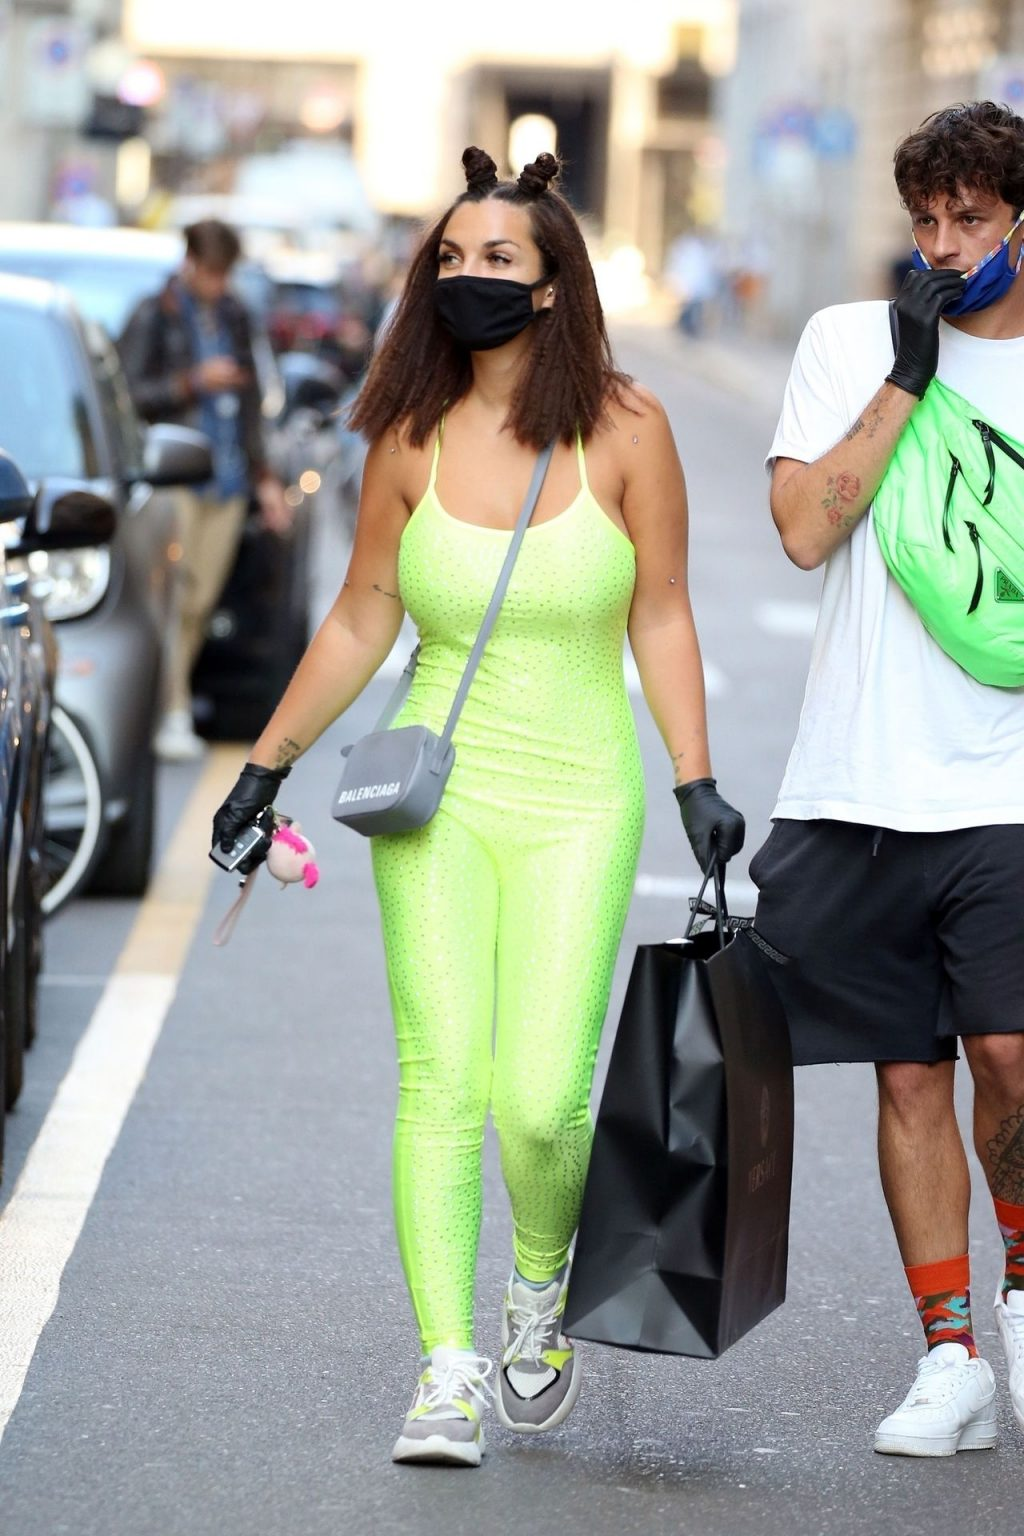 Elettra Lamborghini Shows Her Curves at Versace Store in Milan (38 Photos)